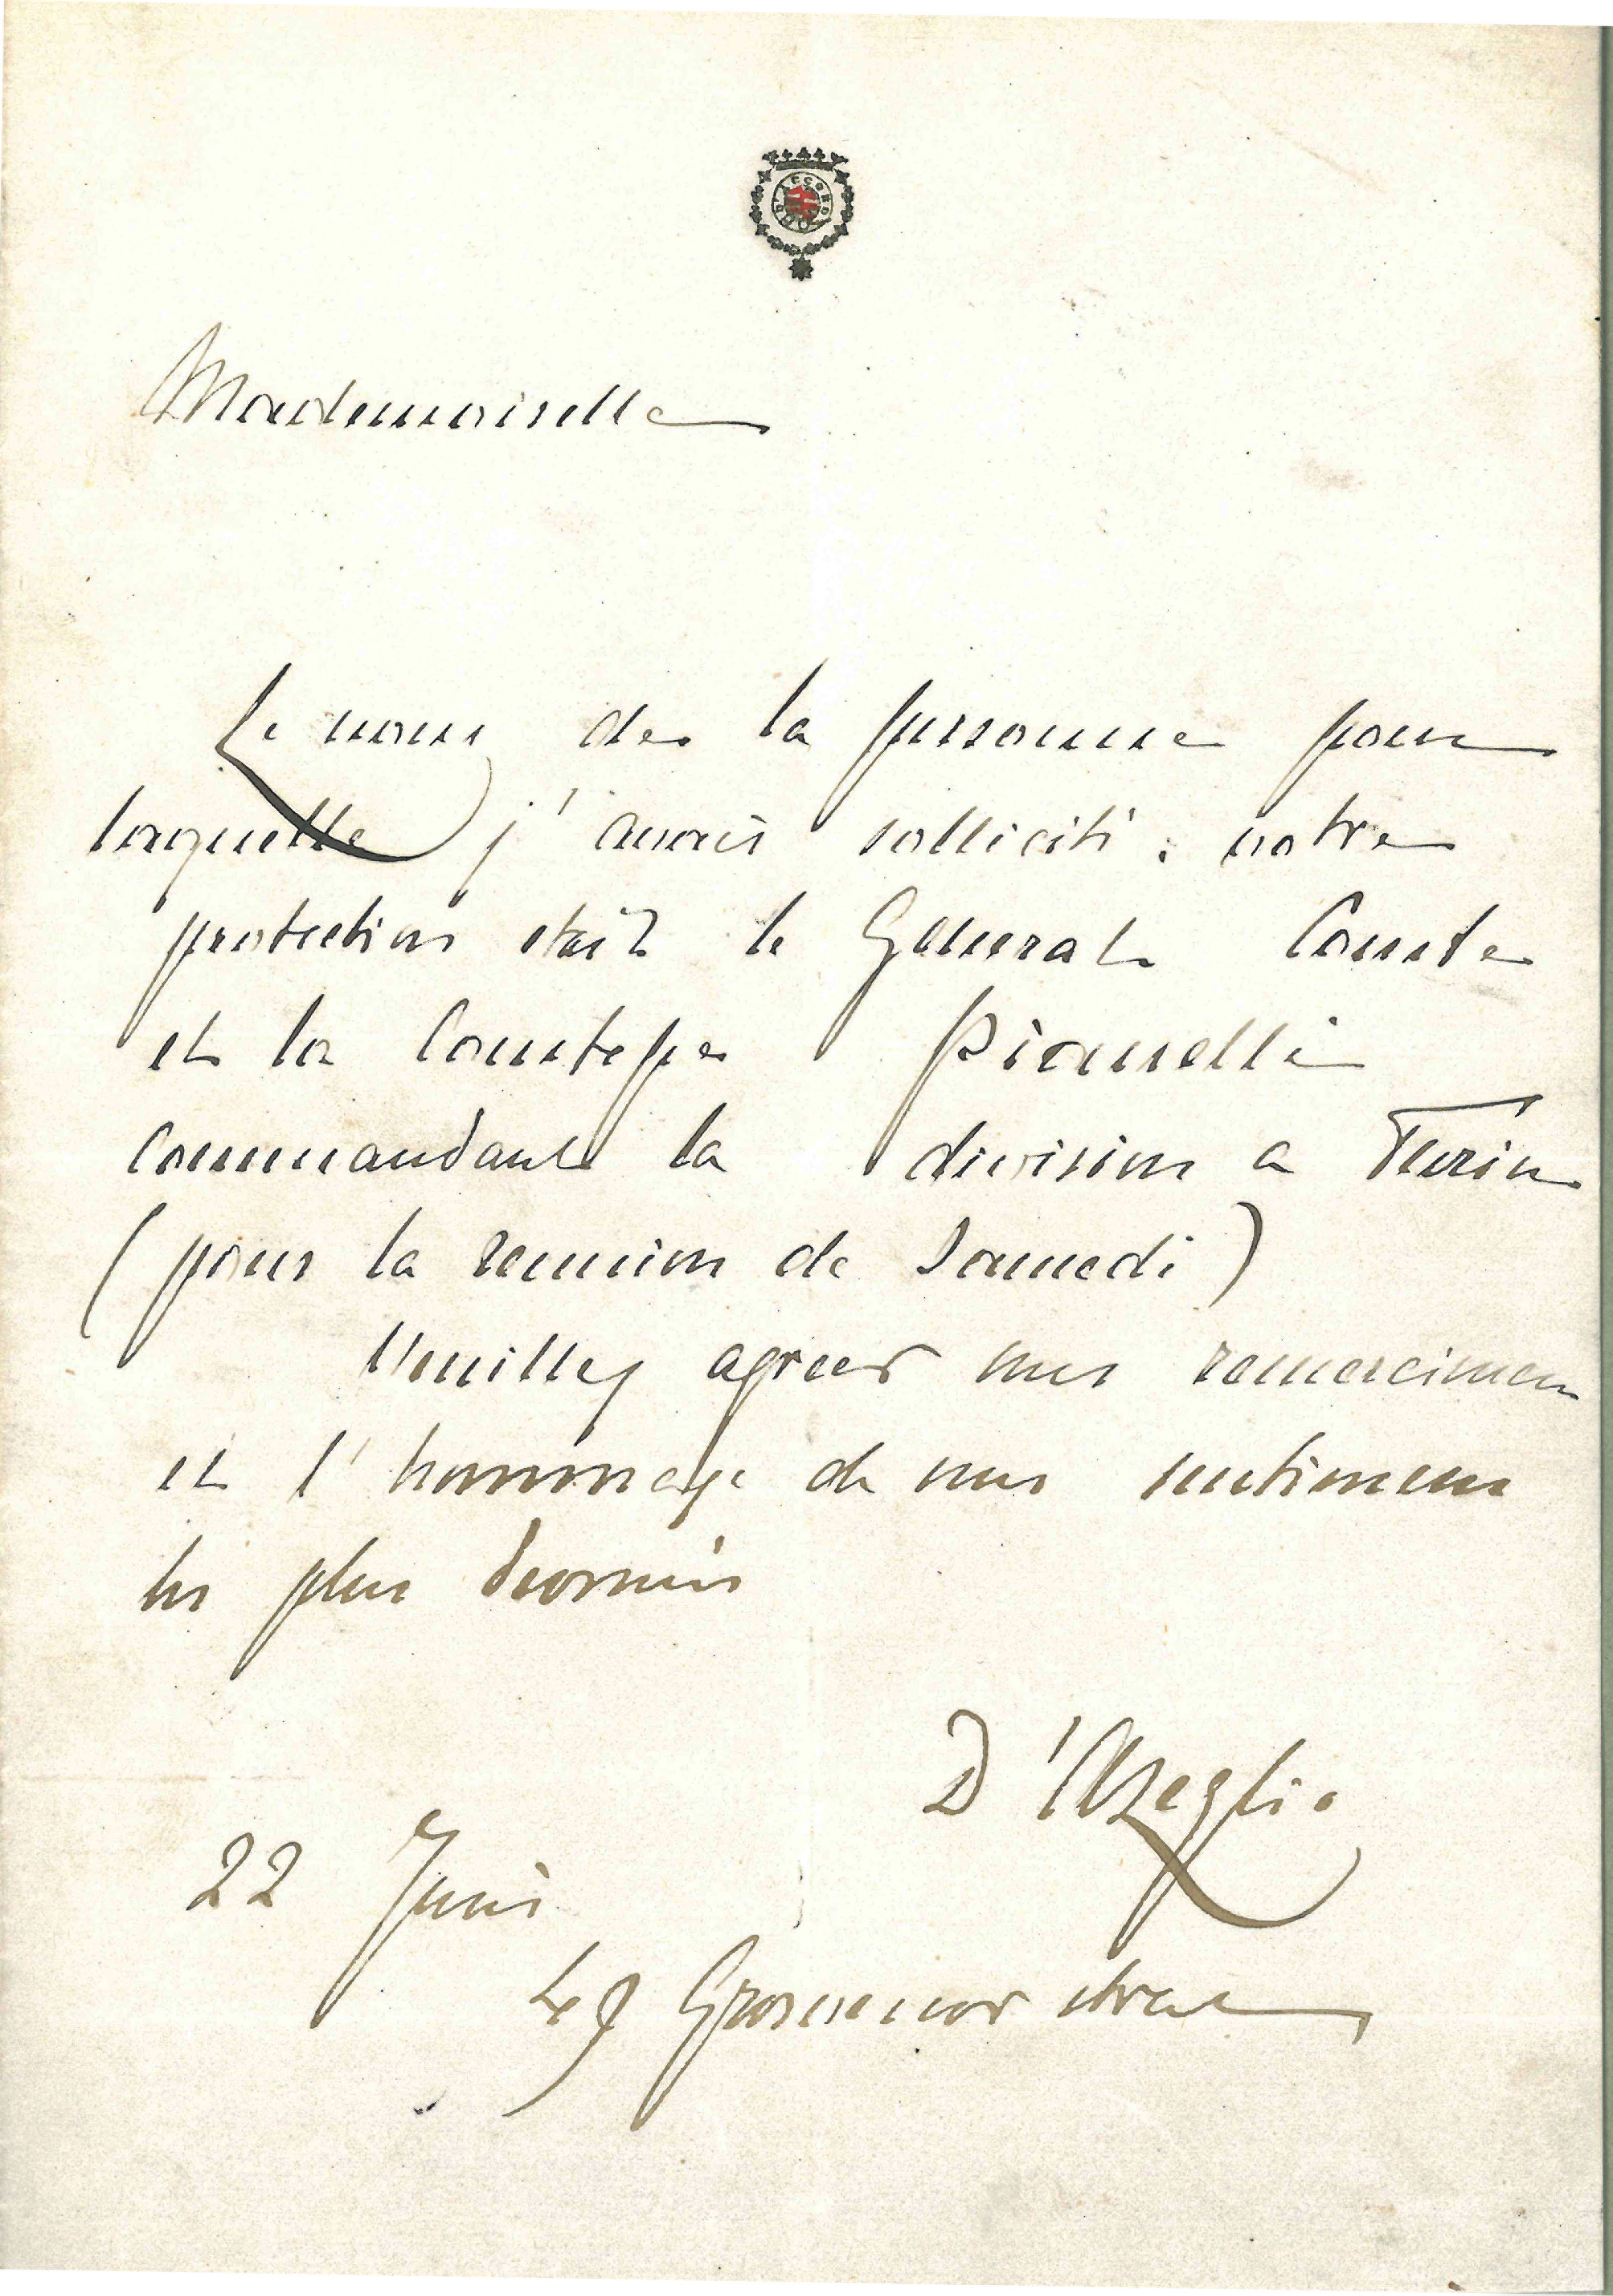 Massimo D'Azeglio (1798-1866) to Anonymous June 22, 1849